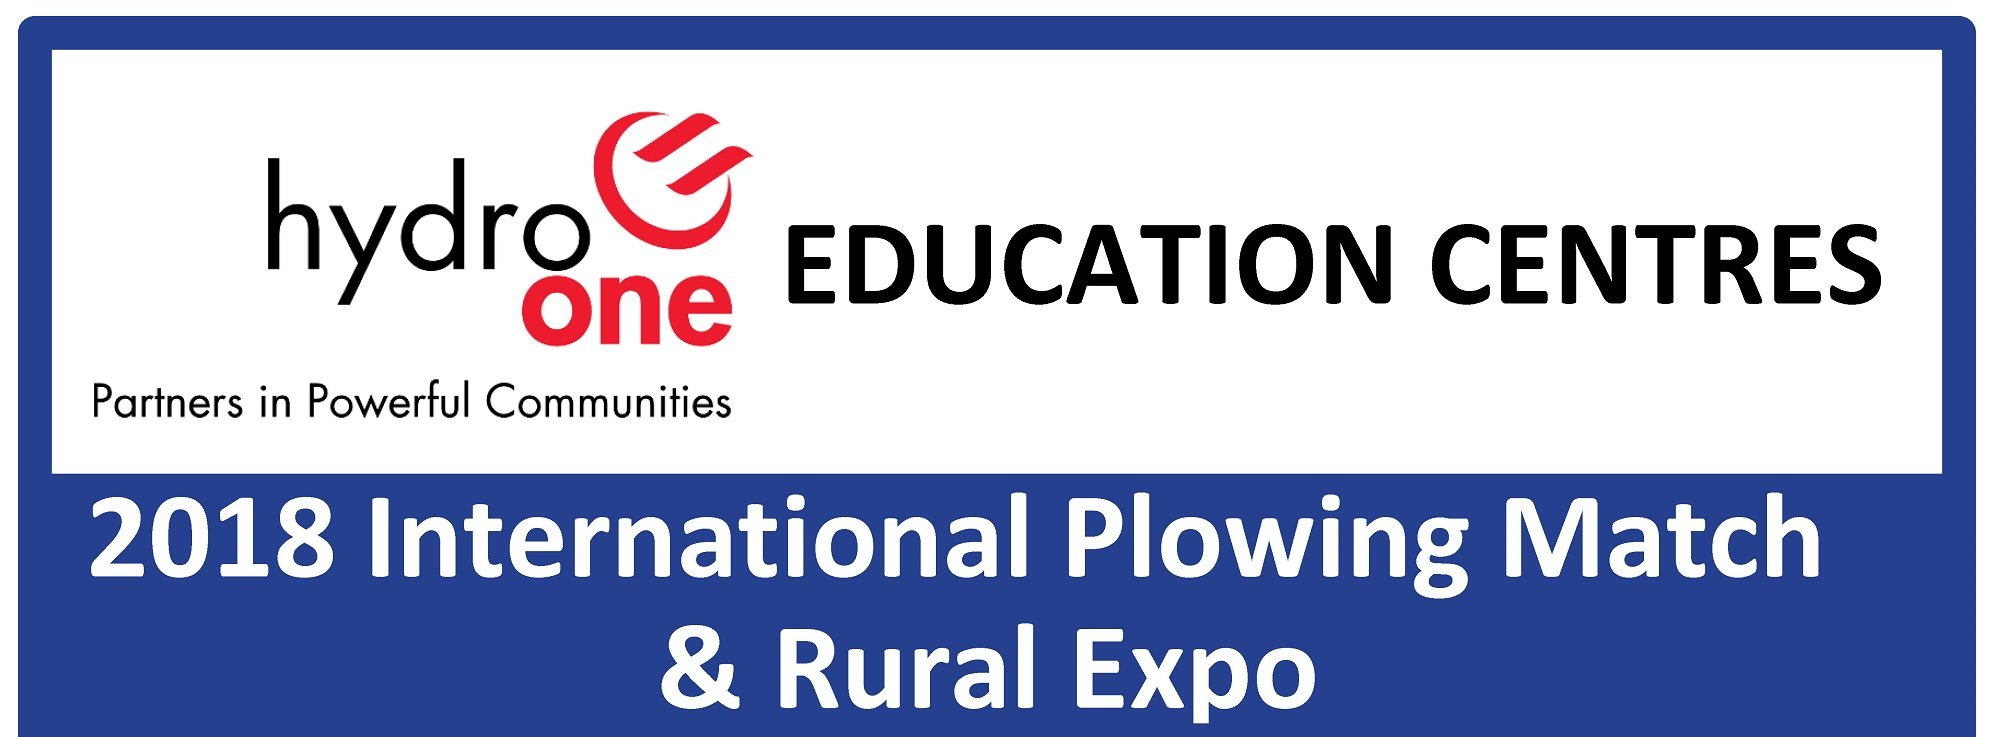 IPM 2018 - Hydro One Education Centres Banner